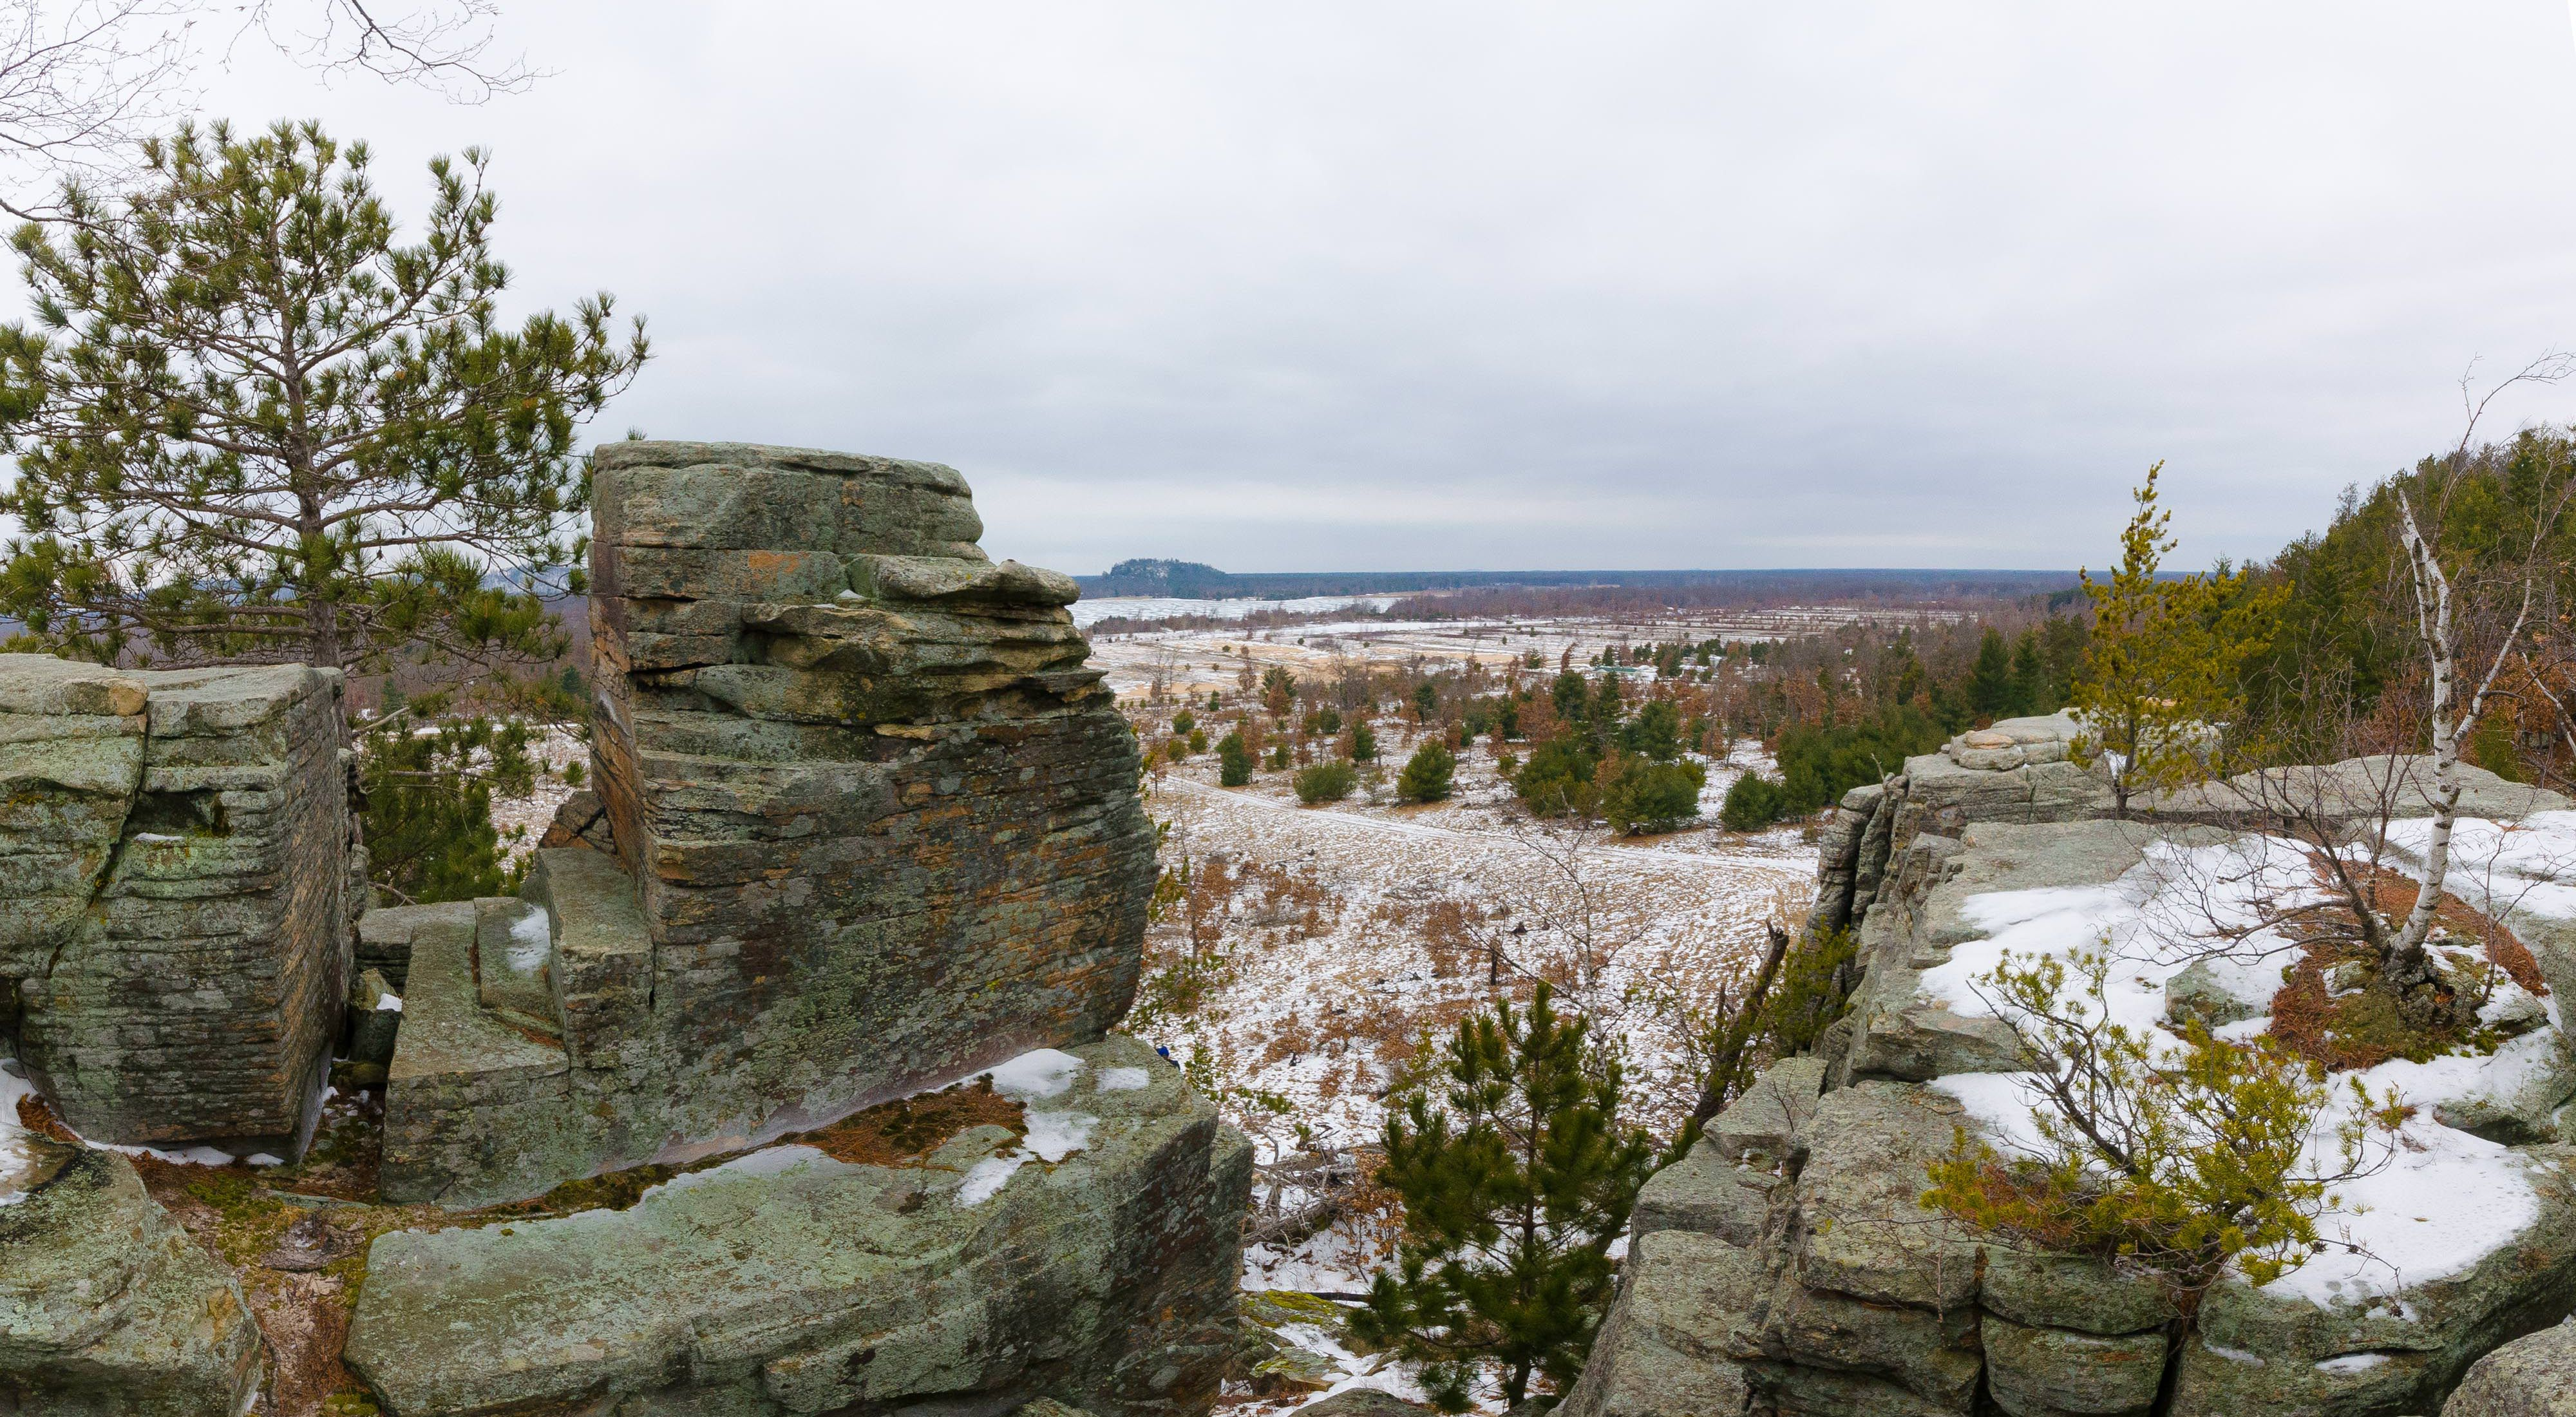 Panoramic view over the wintry landscape from the rocky, snow-covered bluffs dotted with birch and conifer trees at the Quincy Buff and Wetlands State Natural Area.